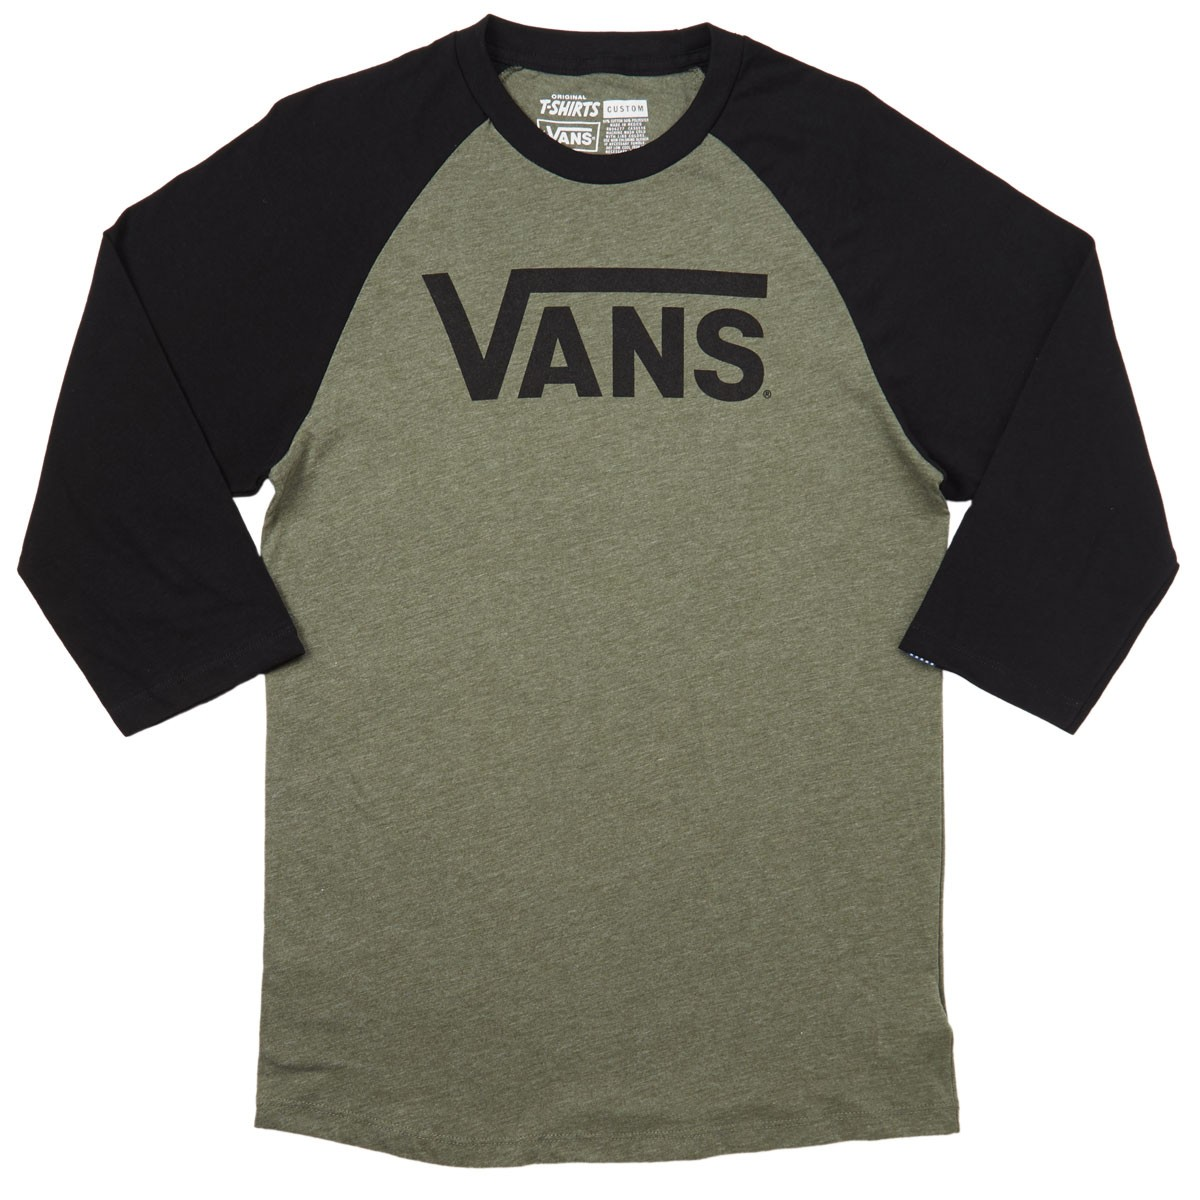 Vans Classic Raglan T-Shirt - Heather Olive Black 393f0119f